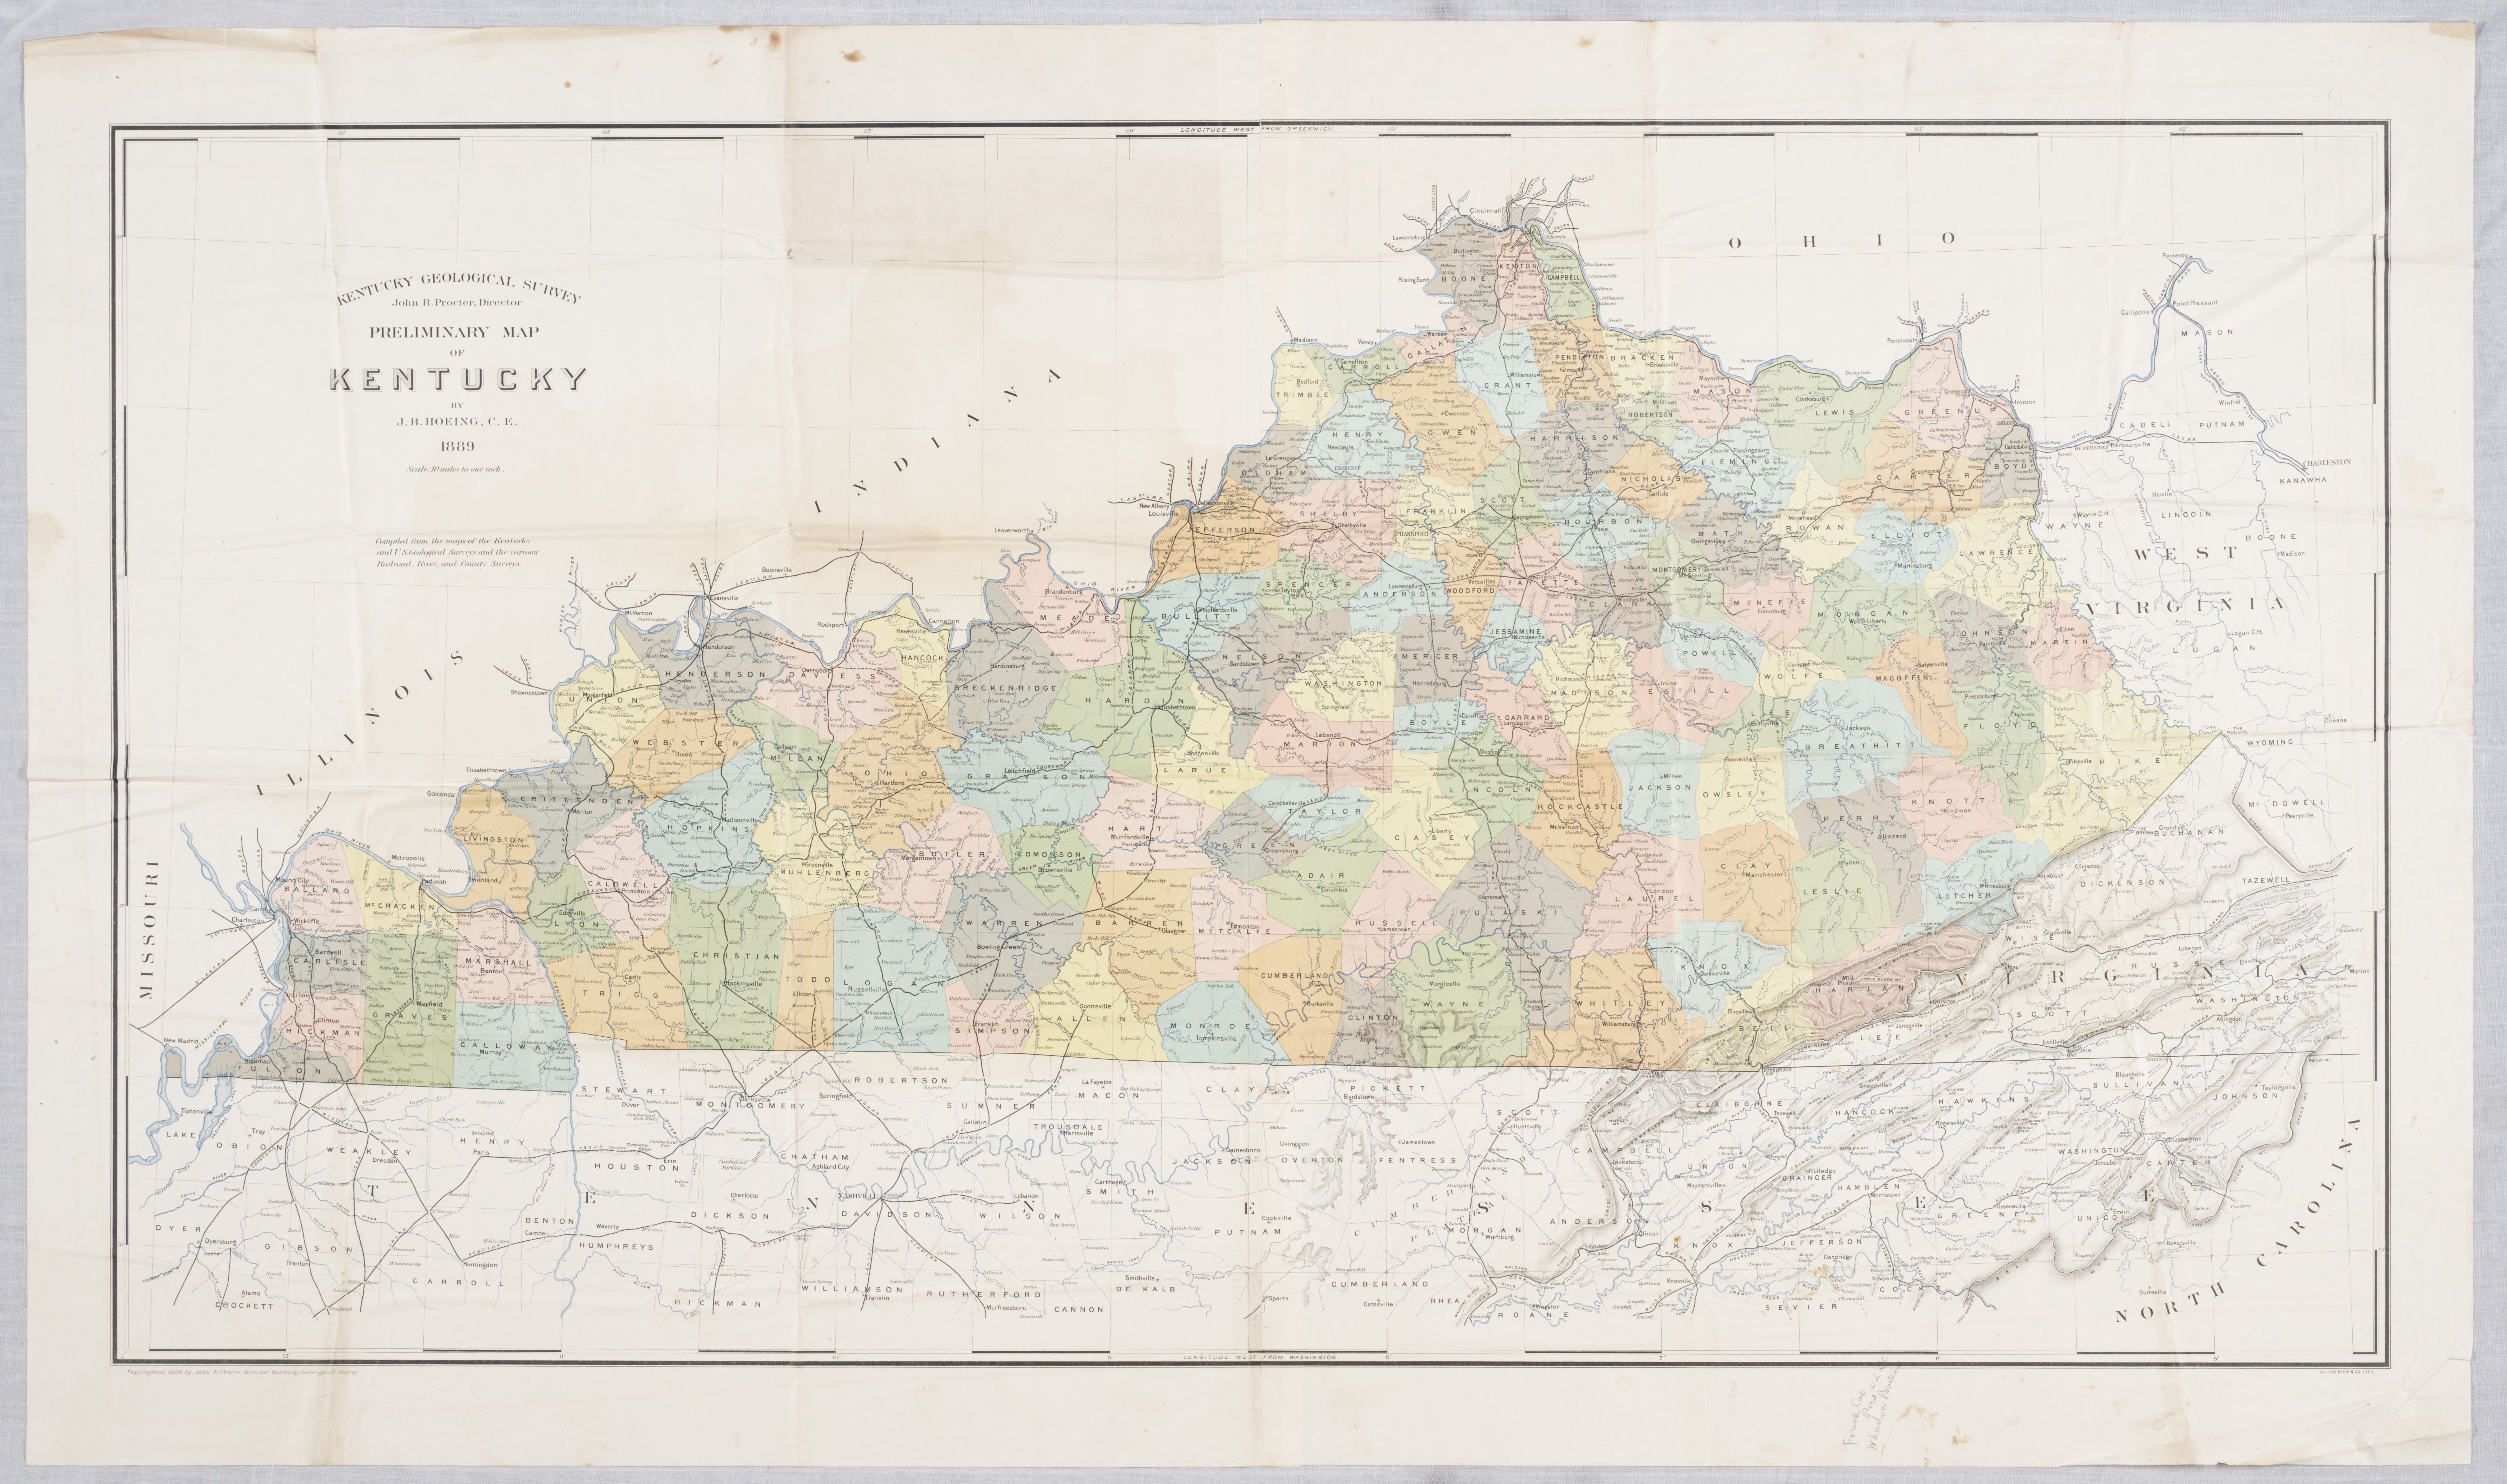 Preliminary Map of Kentucky - Kentucky Digital Liry on kentucky state, kentucky agriculture map, lexington map, kentucky usa, kentucky road map, kentucky physical map, lake city colorado area map, kentucky on world atlas, tennessee virginia and north carolina map, gray kentucky map, kentucky time zones by city, kentucky landforms, kentucky planting zone map,